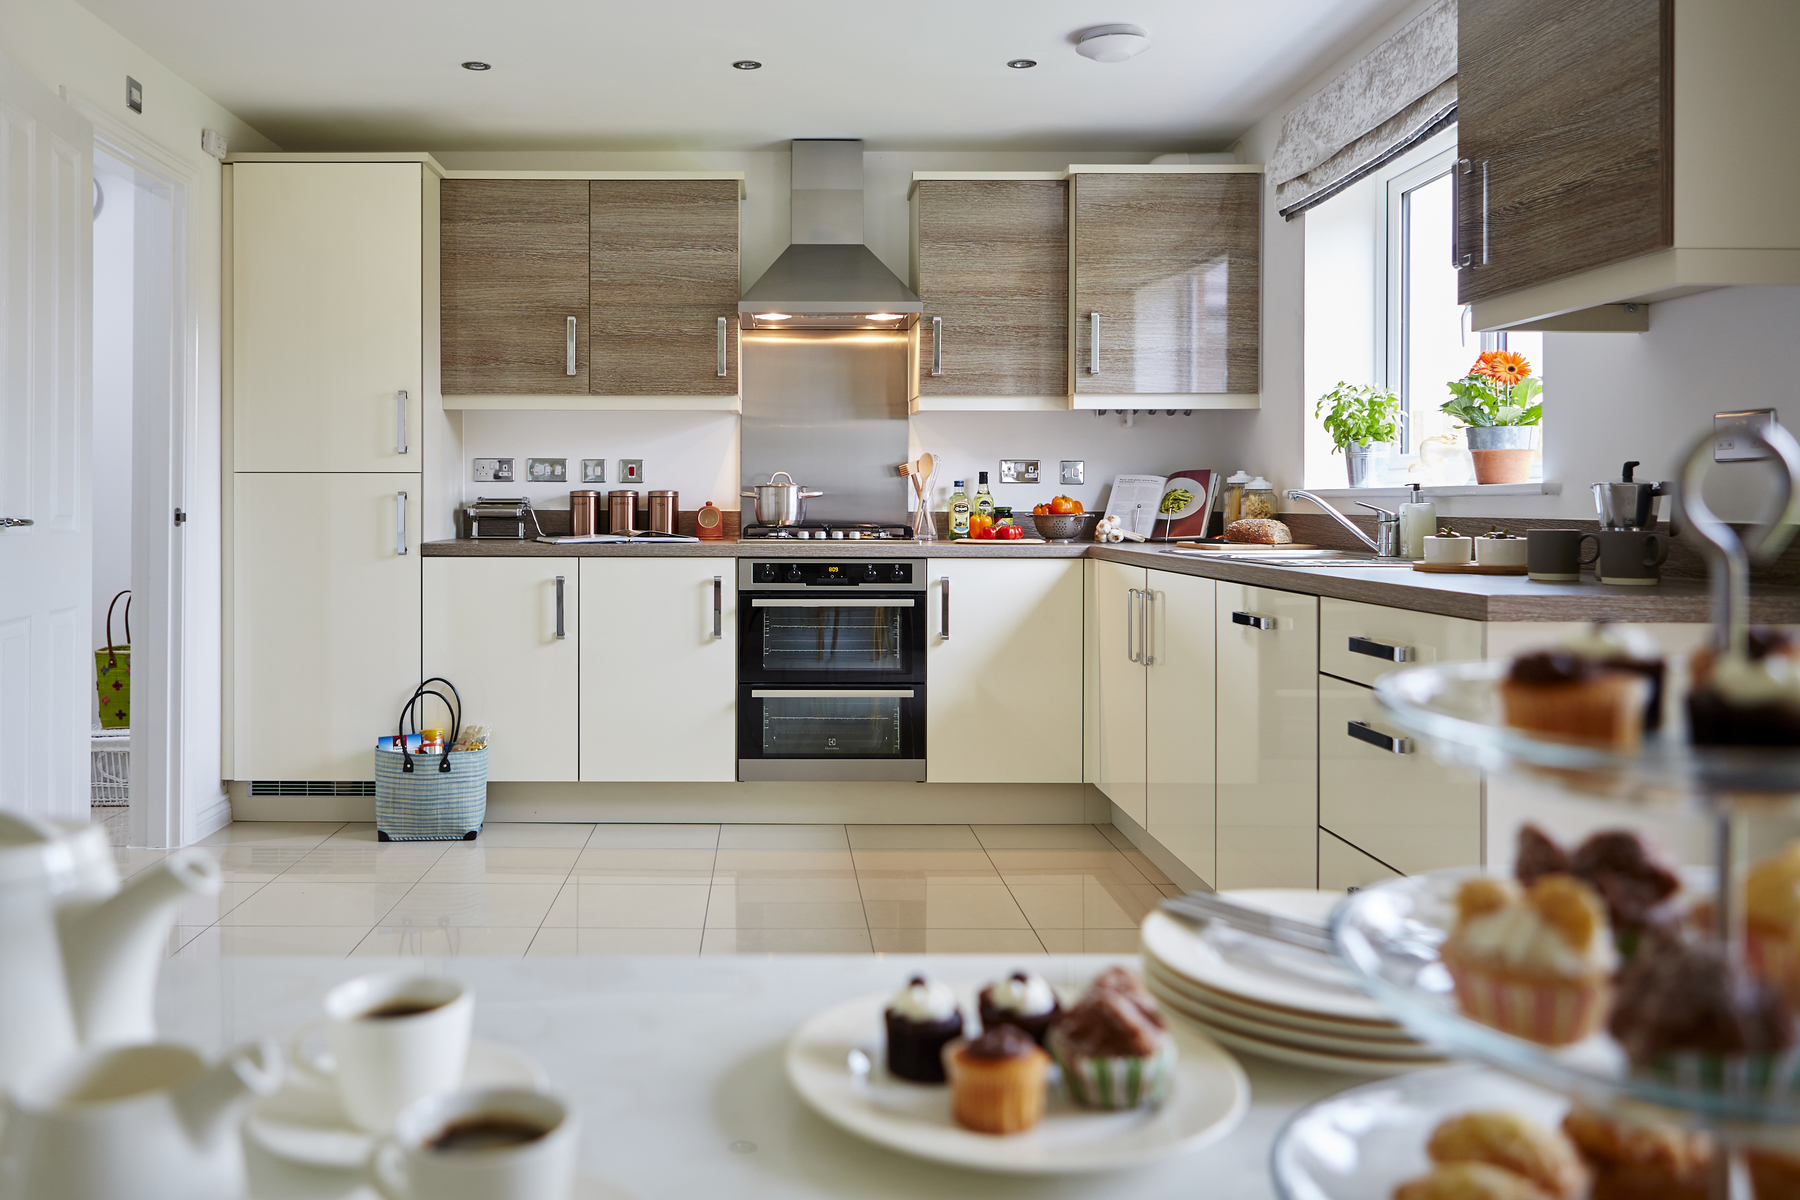 tw_swales_kingsmead_caerphilly_pa44_midford_kitchen_dining